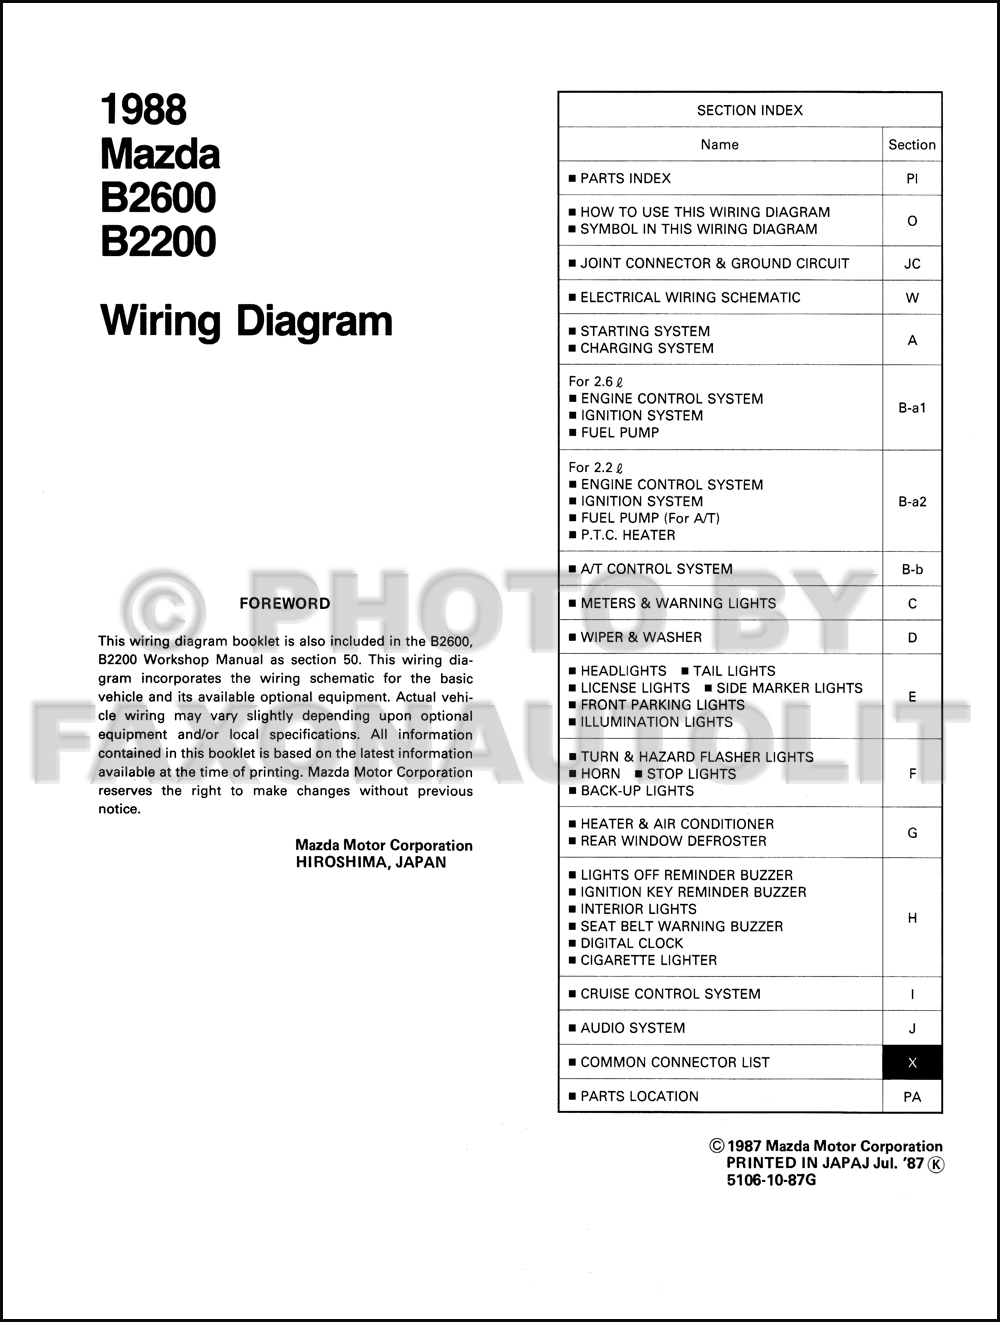 mazda b2200 radio wiring diagram mazda image 1989 mazda b2200 radio wiring diagram wiring diagram on mazda b2200 radio wiring diagram